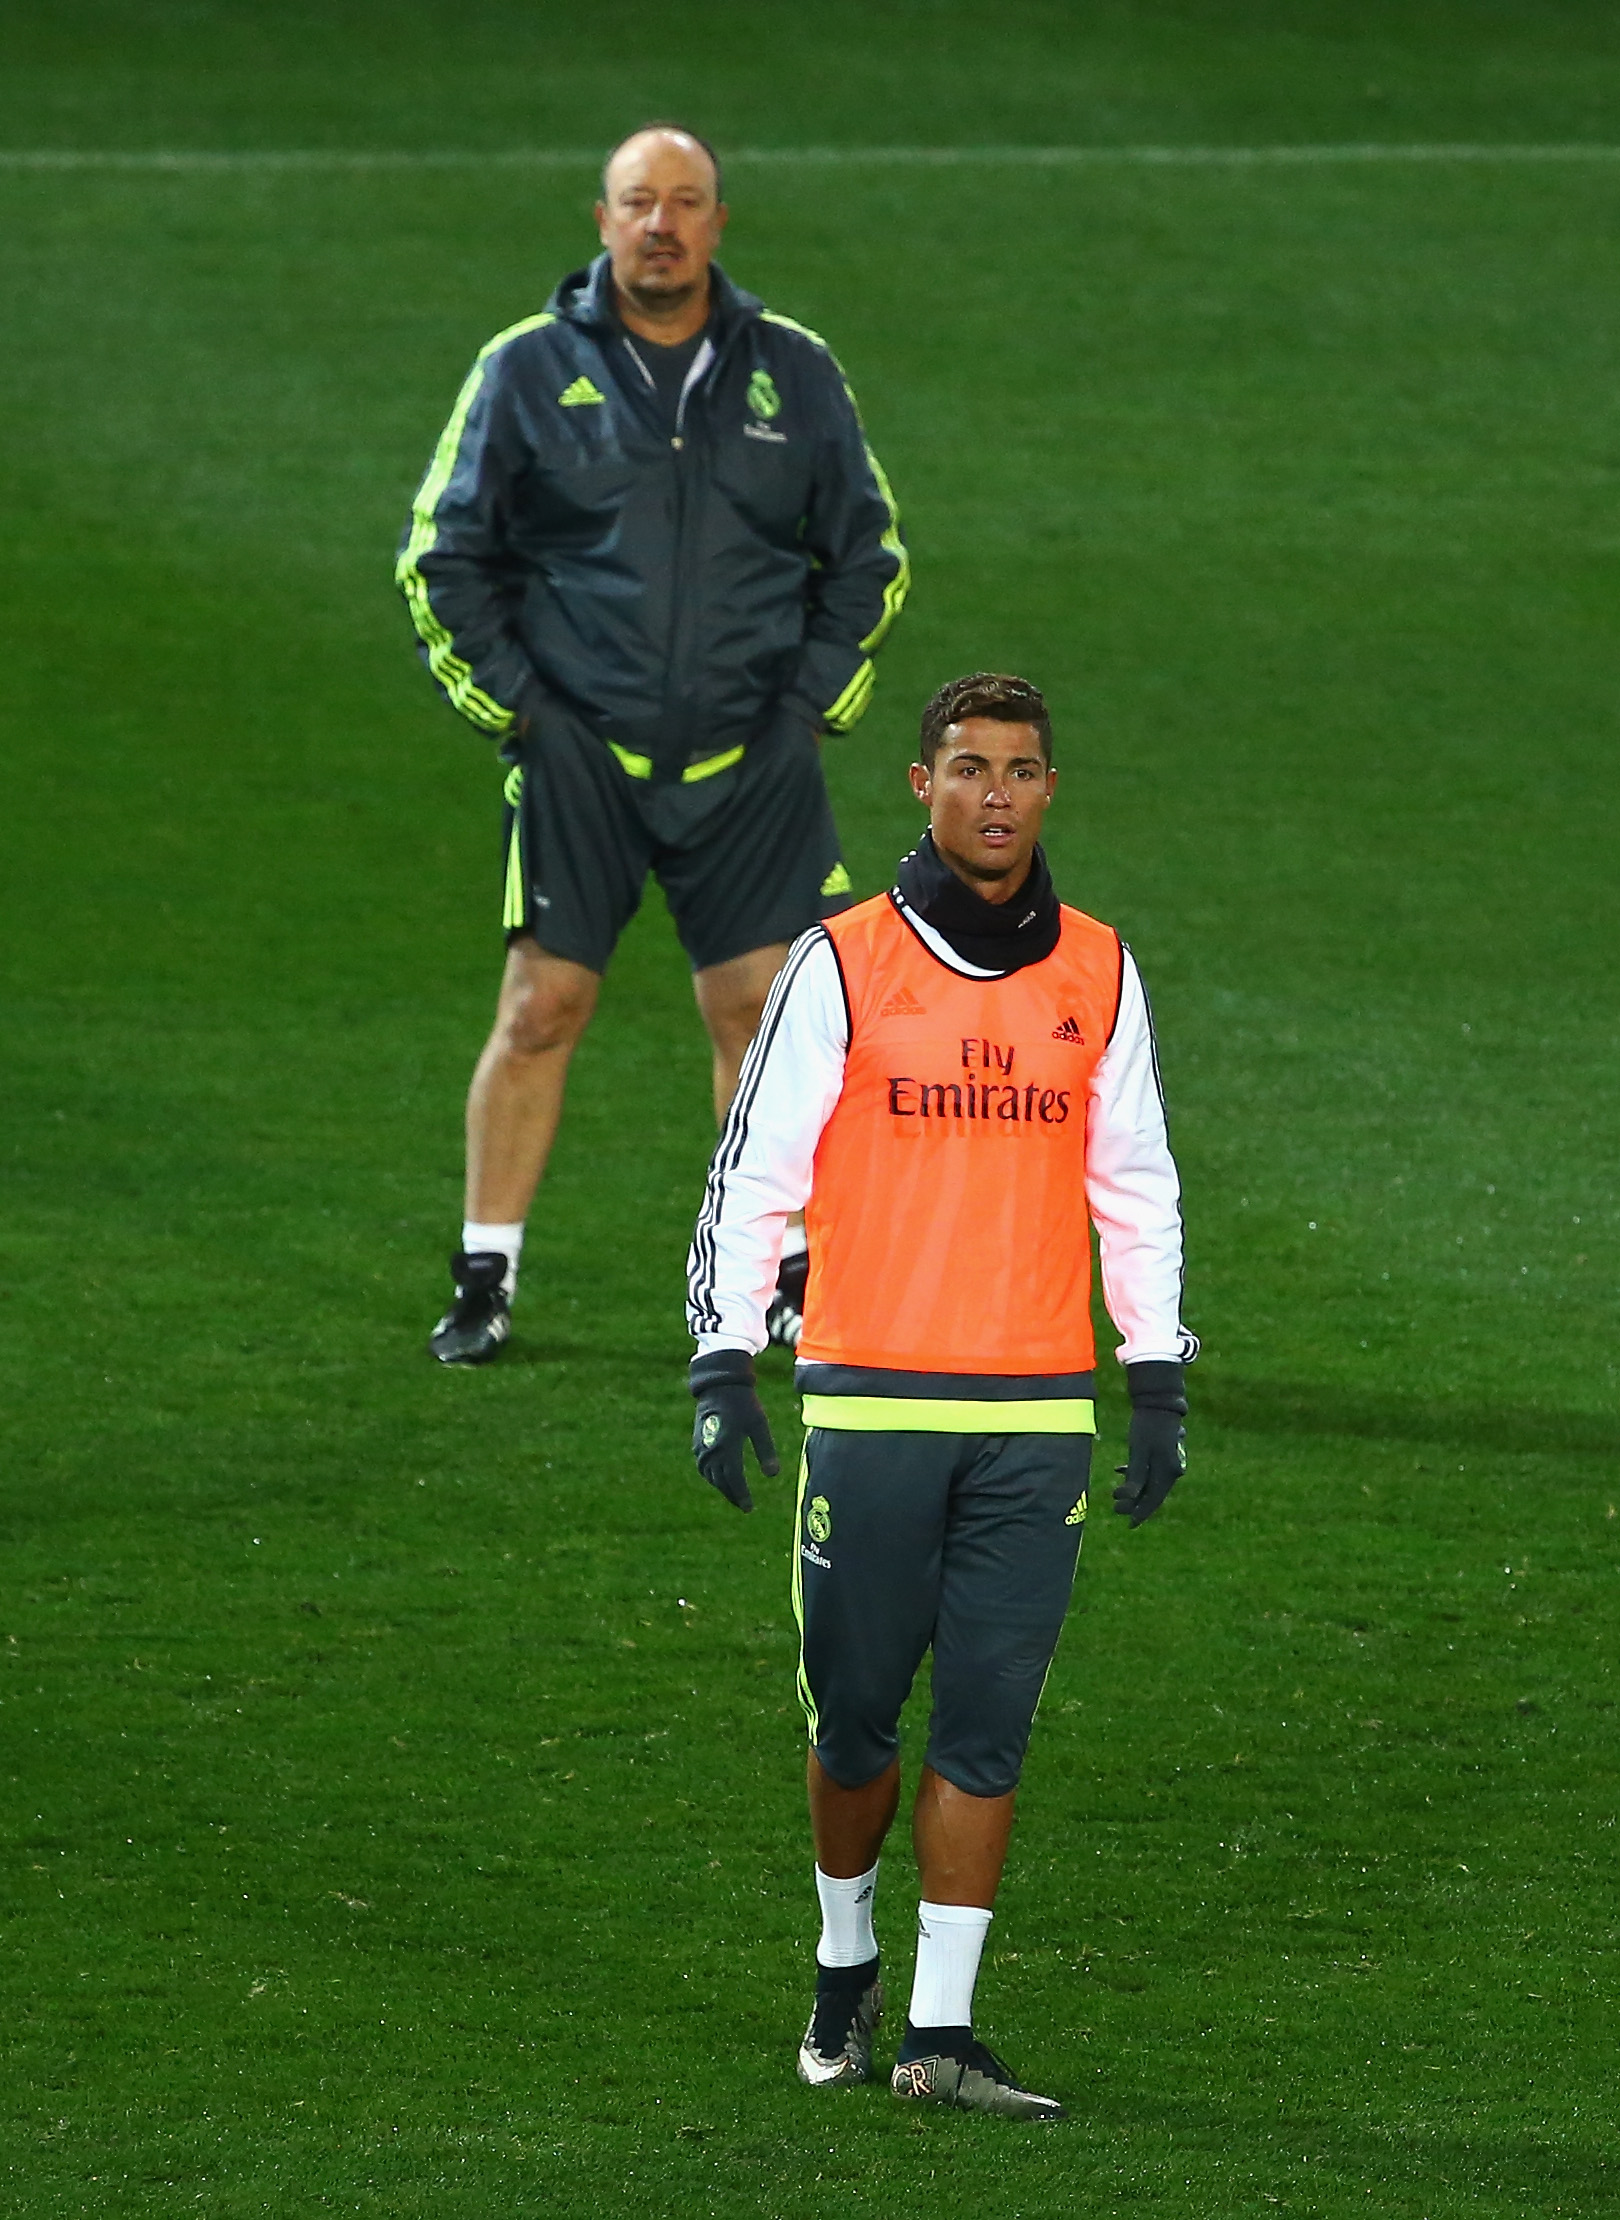 MELBOURNE, AUSTRALIA - JULY 15: Cristiano Ronaldo of Real Madrid and head coach Rafael Benitez look on during Real Madrid training session at Melbourne Cricket Ground on July 15, 2015 in Melbourne, Australia. (Photo by Robert Cianflone/Getty Images)